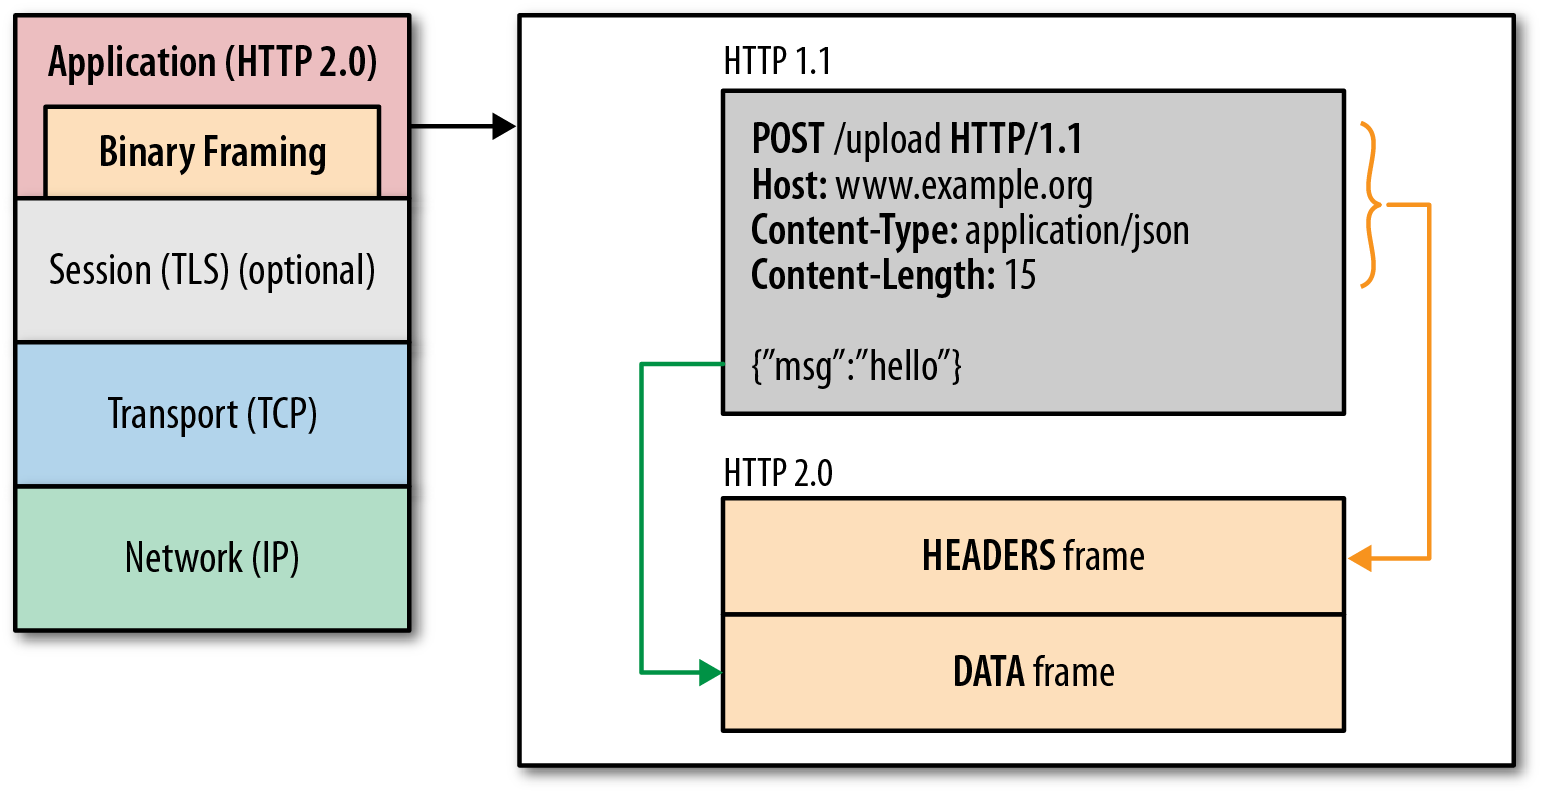 HTTP 2.0 Changes New Standard